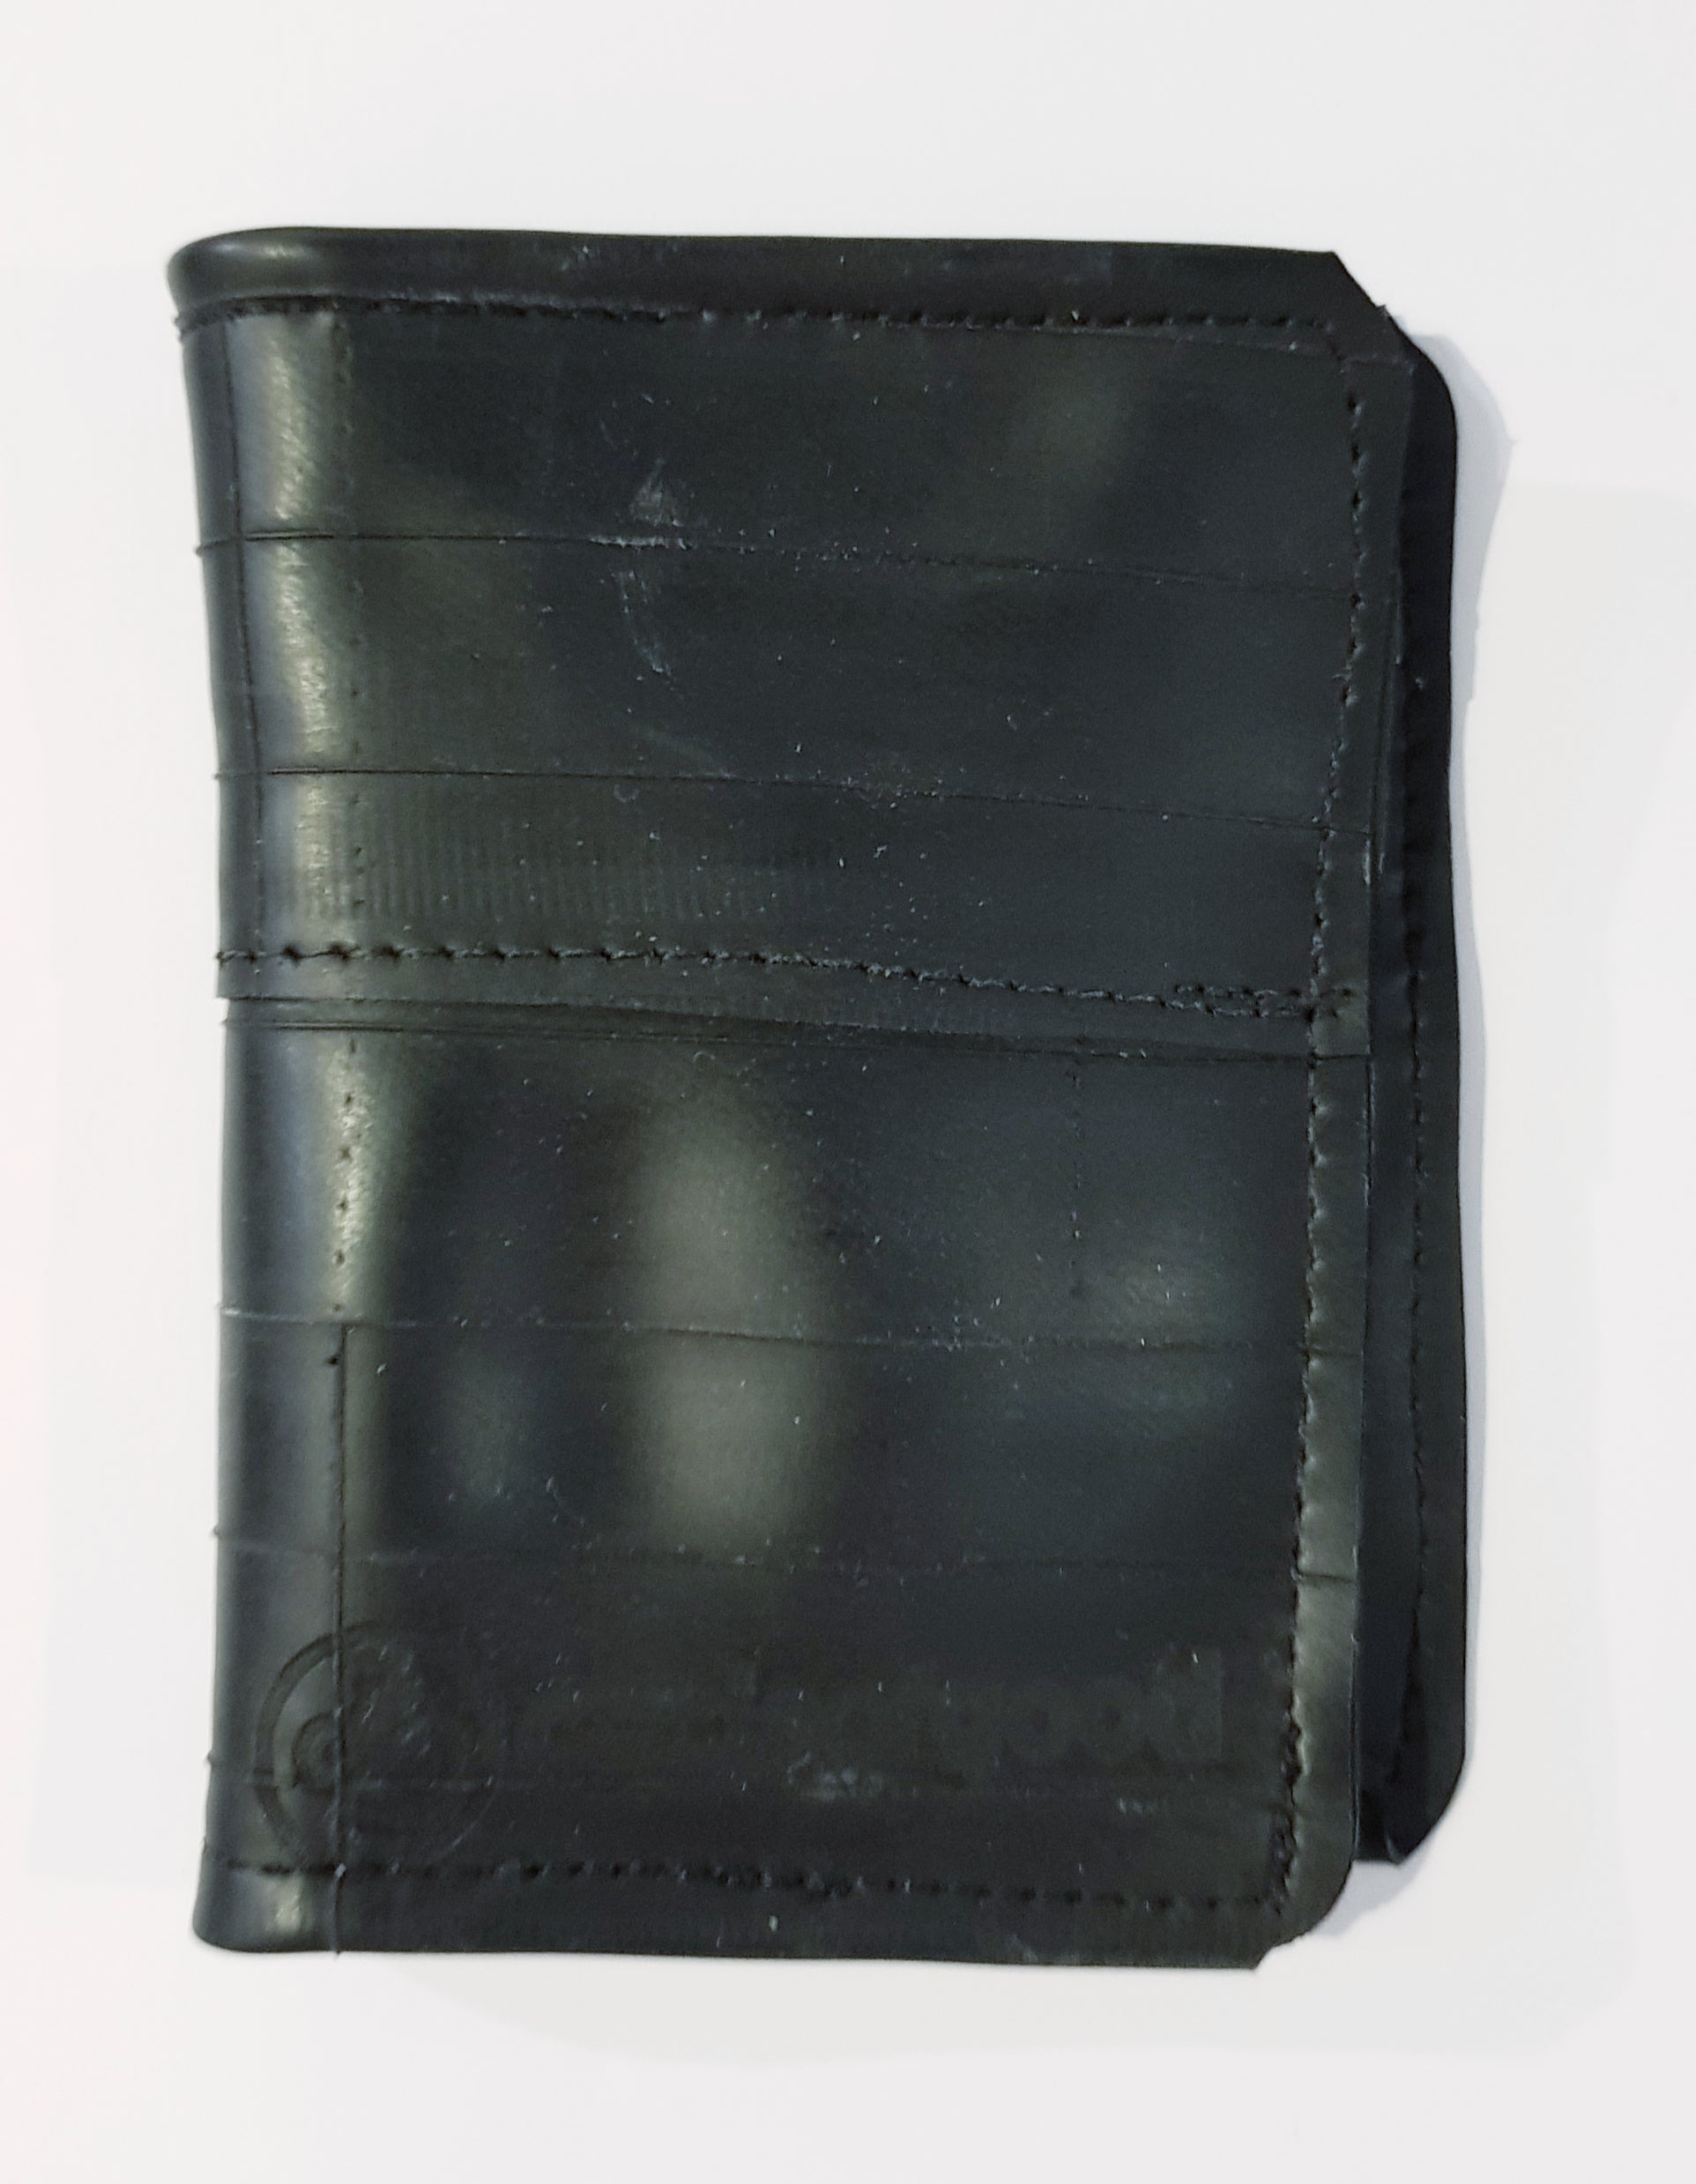 Cycle of Good - Coin Wallet made from bike Inner tube